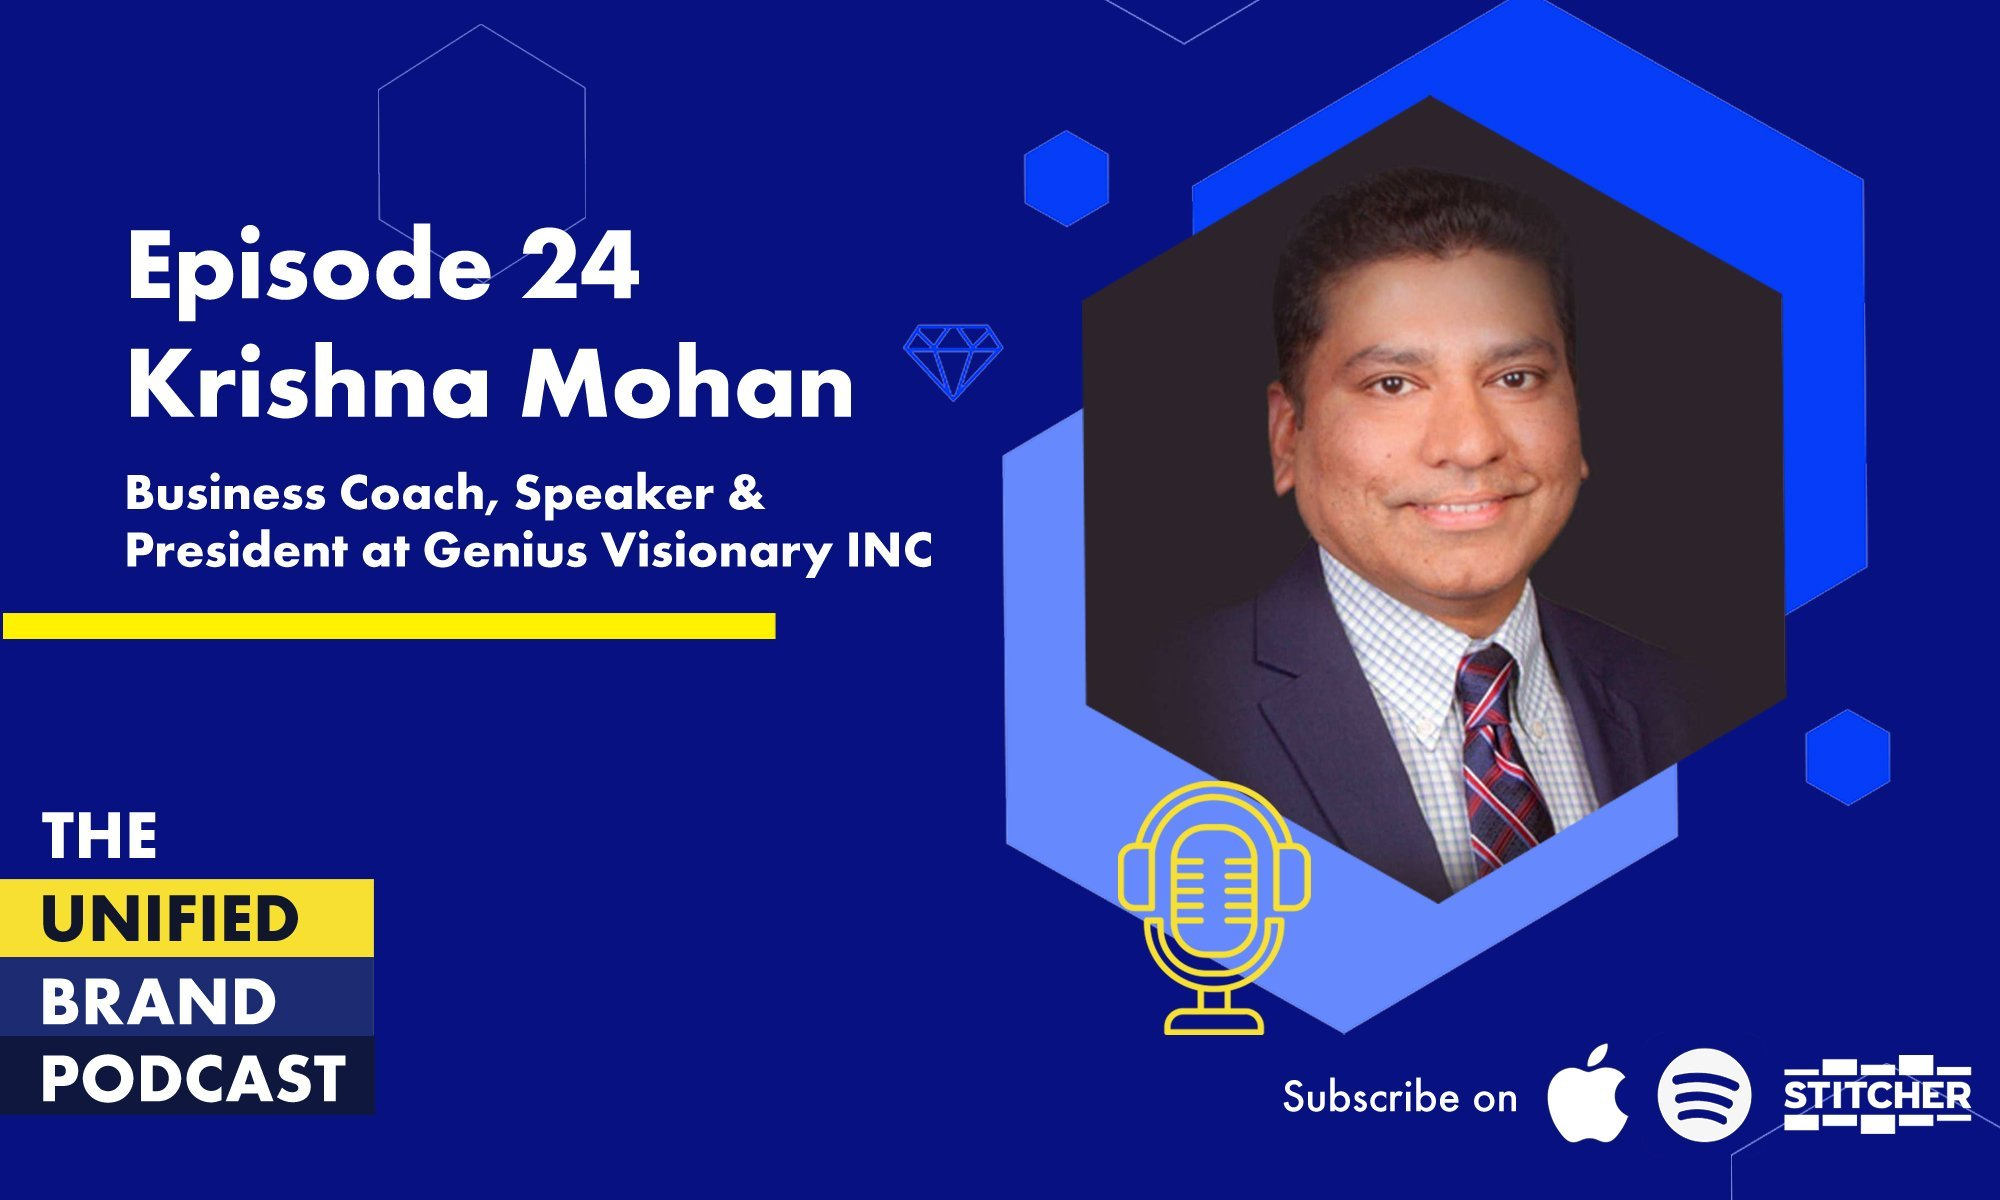 Business Strategy, Funding and Growth With Krishna Mohan, President of Genius Visionary Inc